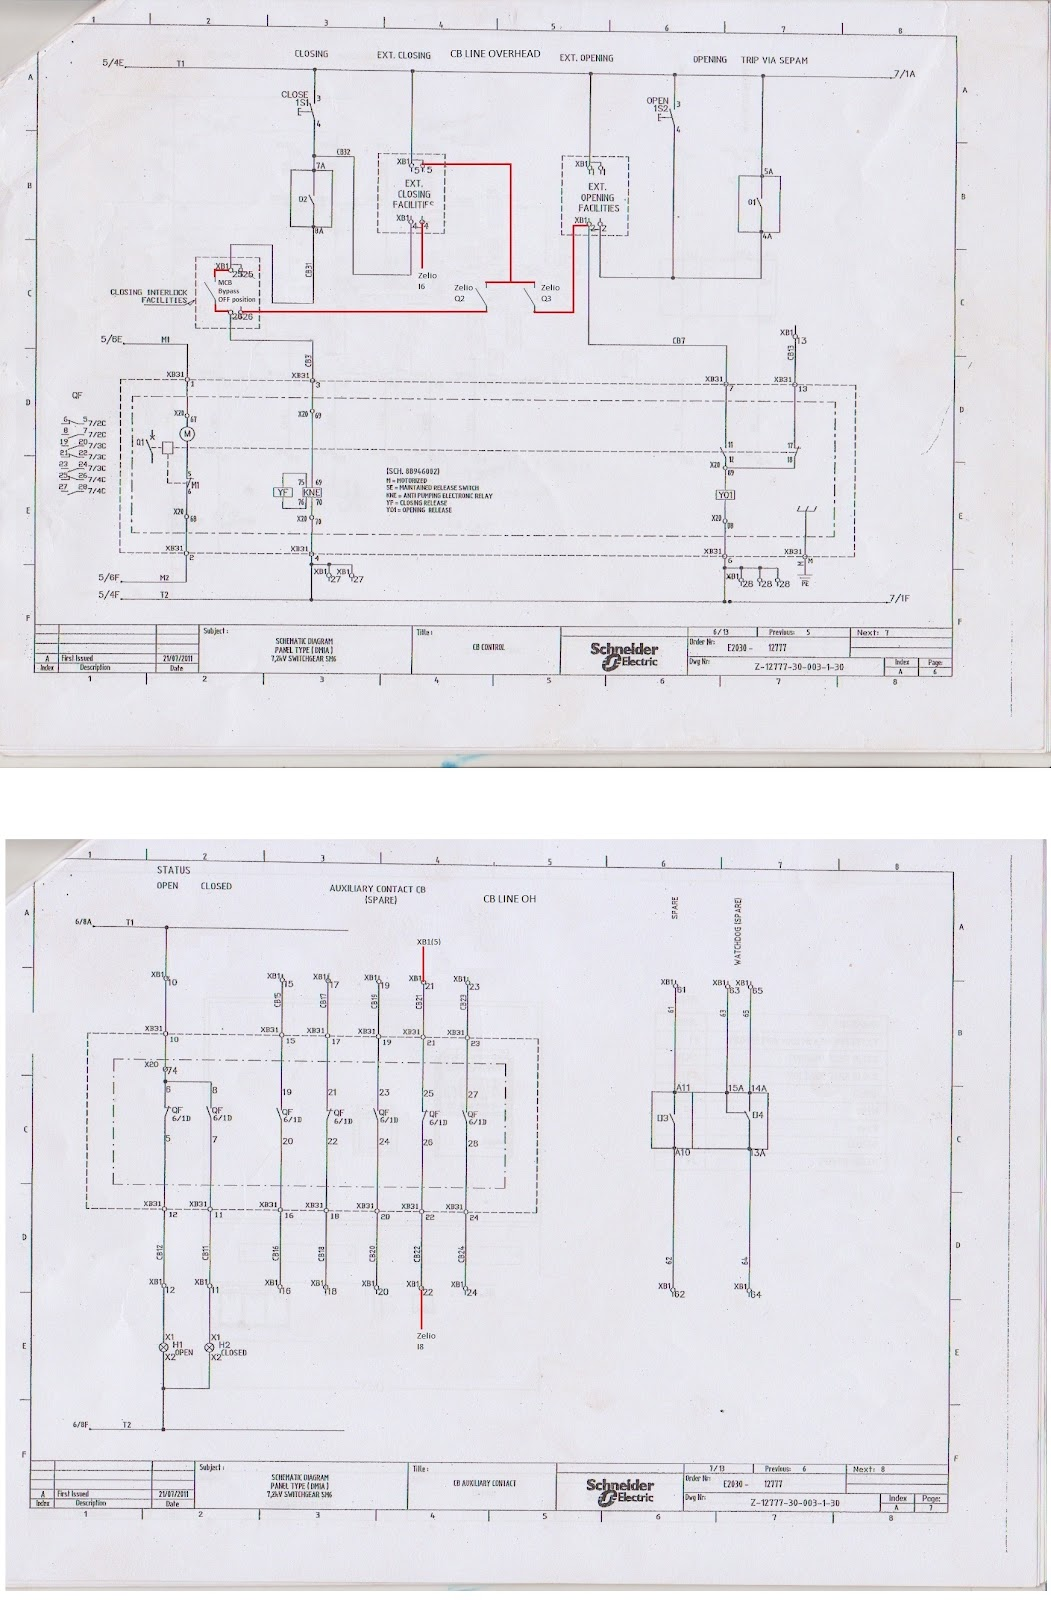 Blog pengalaman wiring diagram auto recloser panel cb dm 1a panel outgoing to trafo 3150 kva asfbconference2016 Choice Image